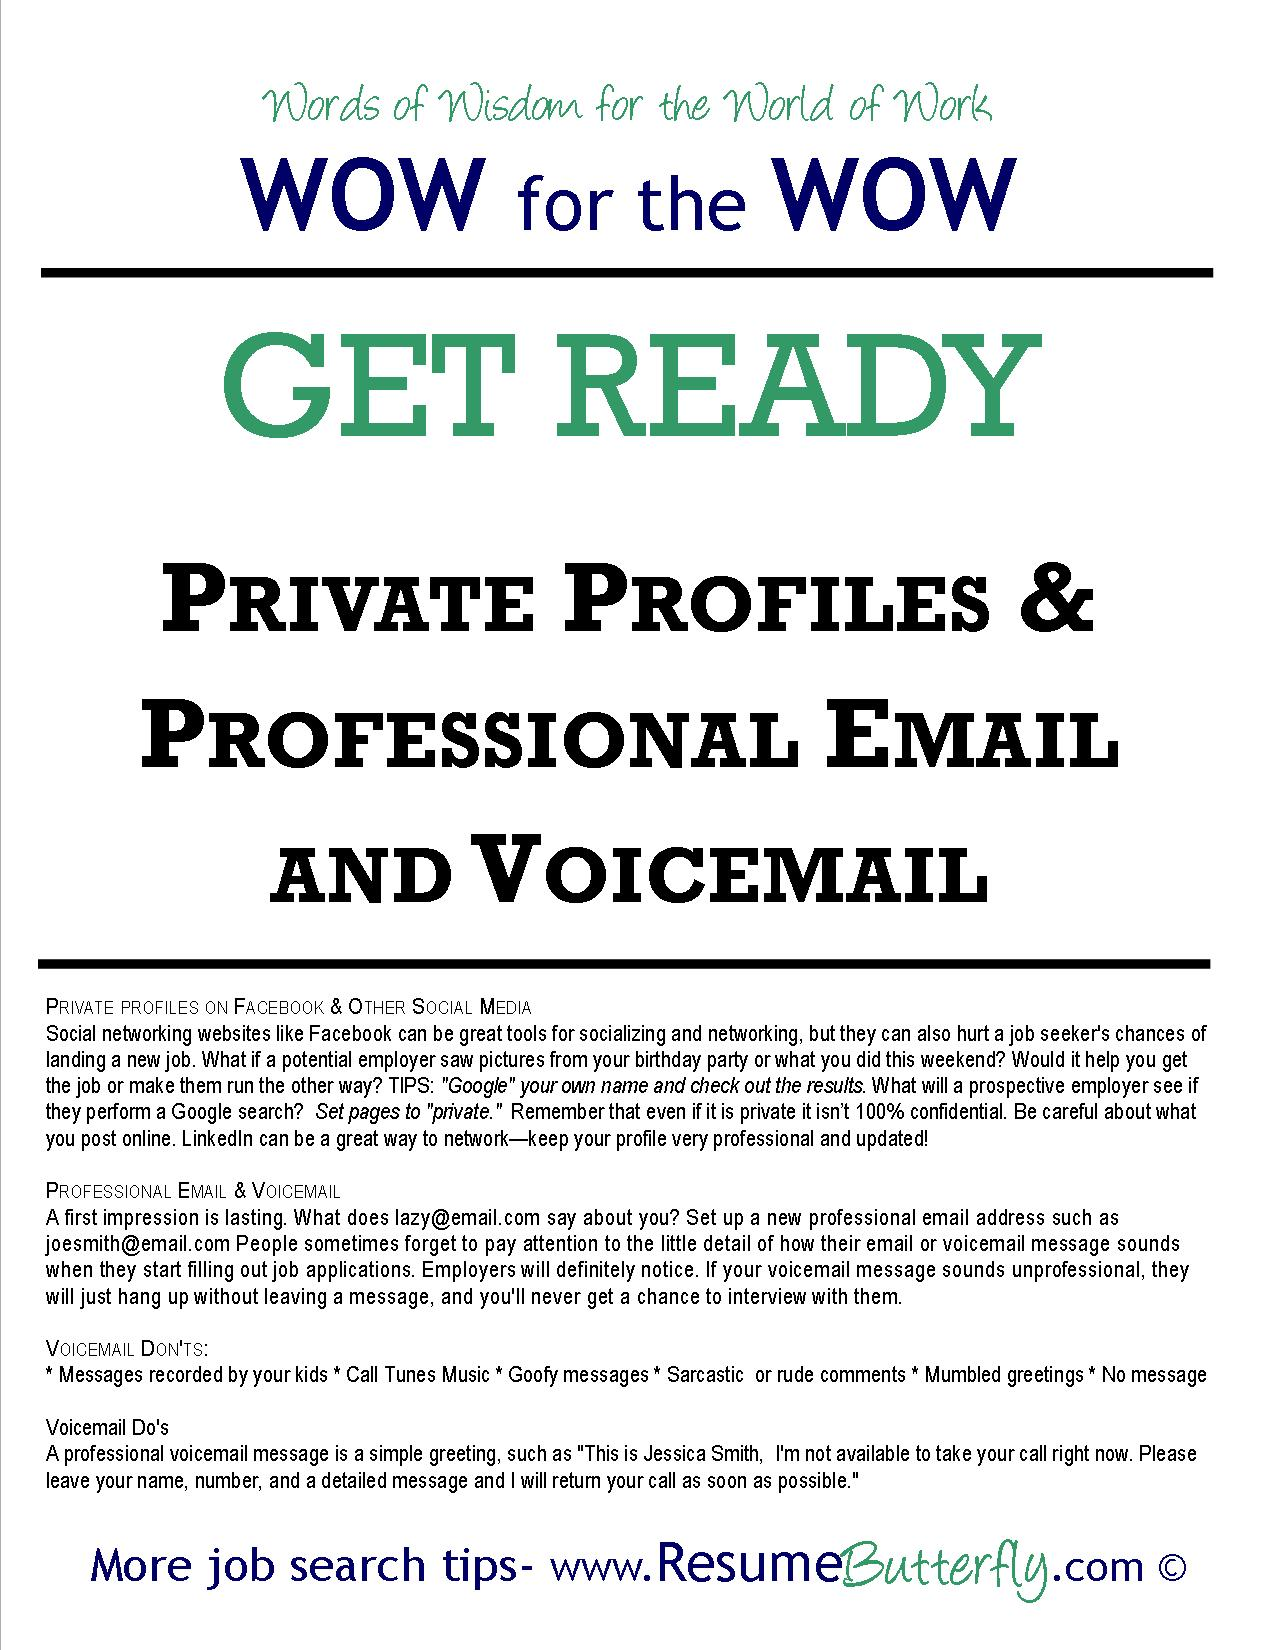 Private profiles professional email and voicemail resume butterfly job search preparation job search skills resume butterfly get ready private profiles m4hsunfo